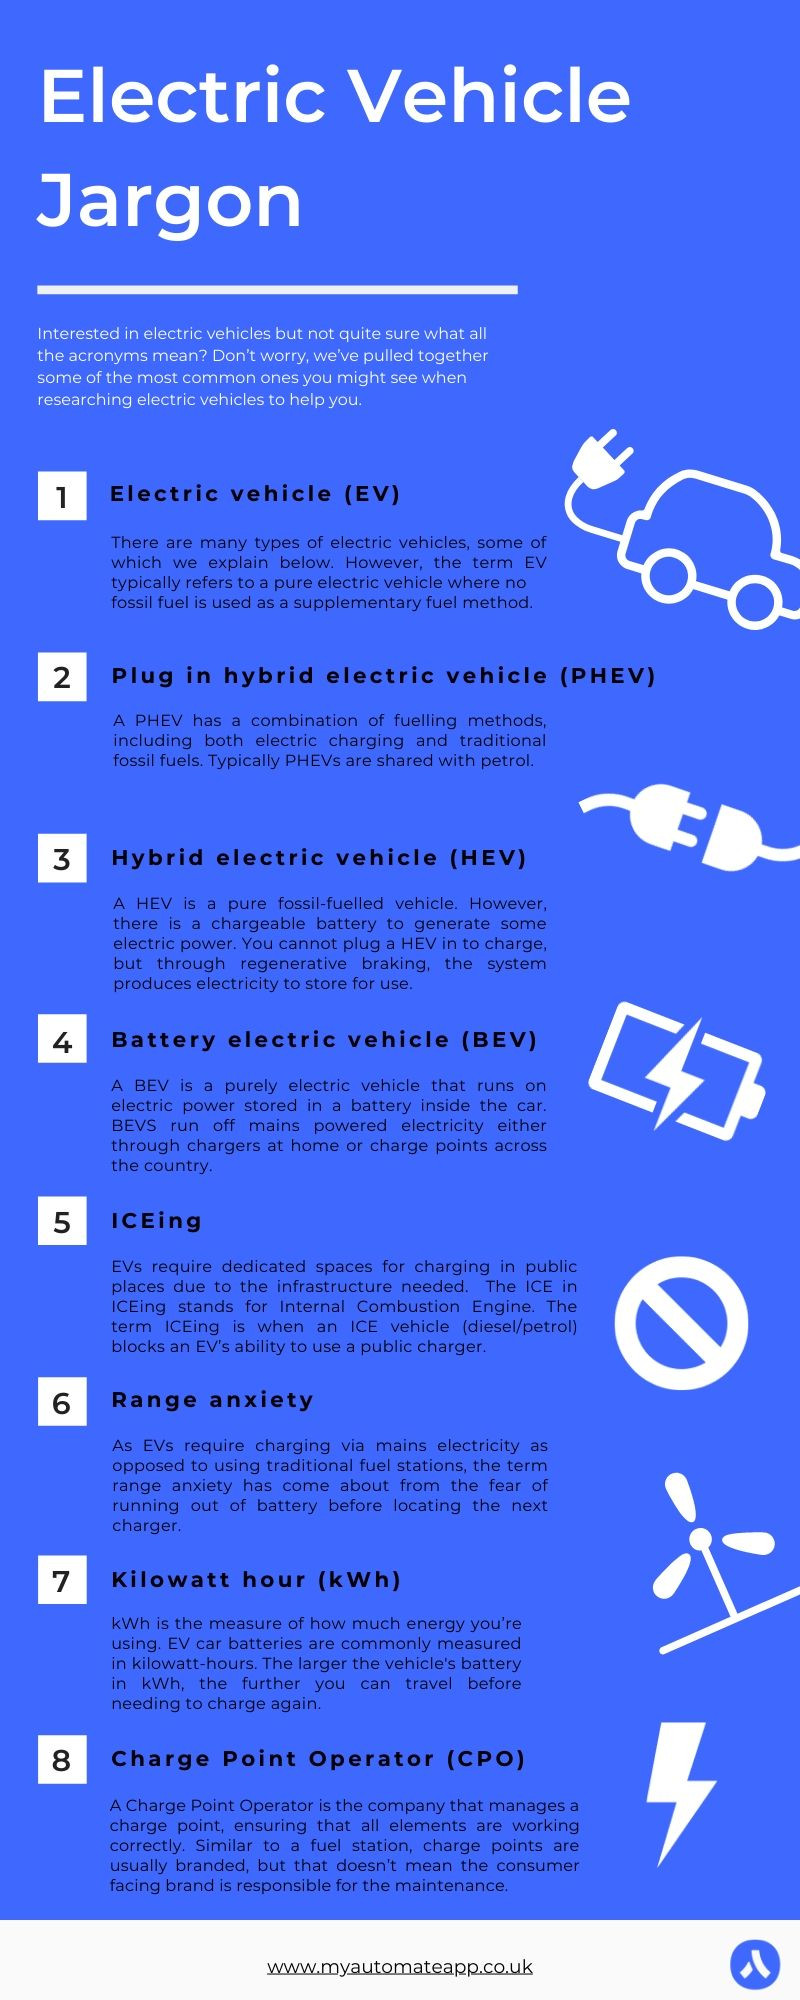 Electric vehicle definitions